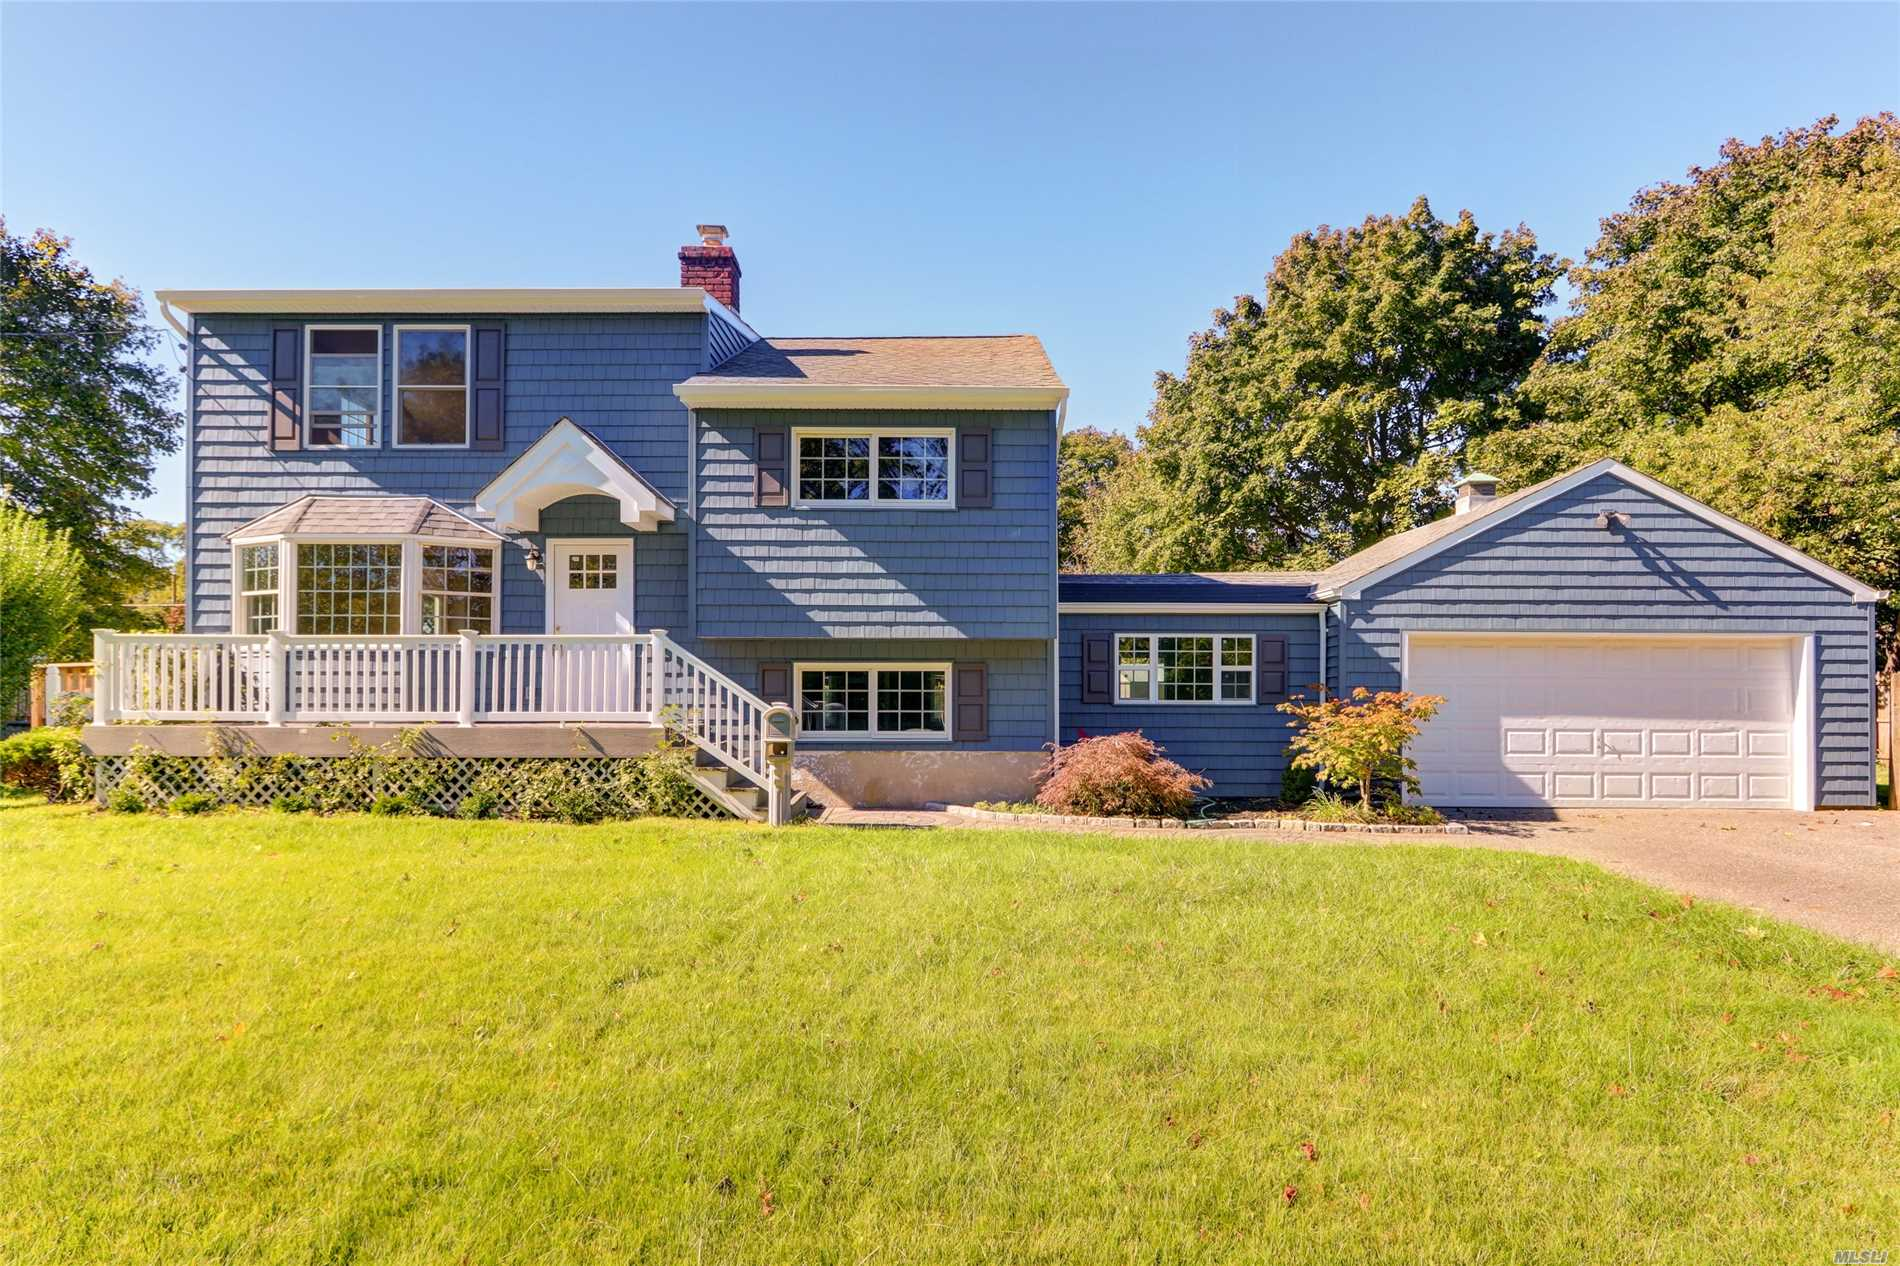 Photo of home for sale at 534 Pat Dr, West Islip NY